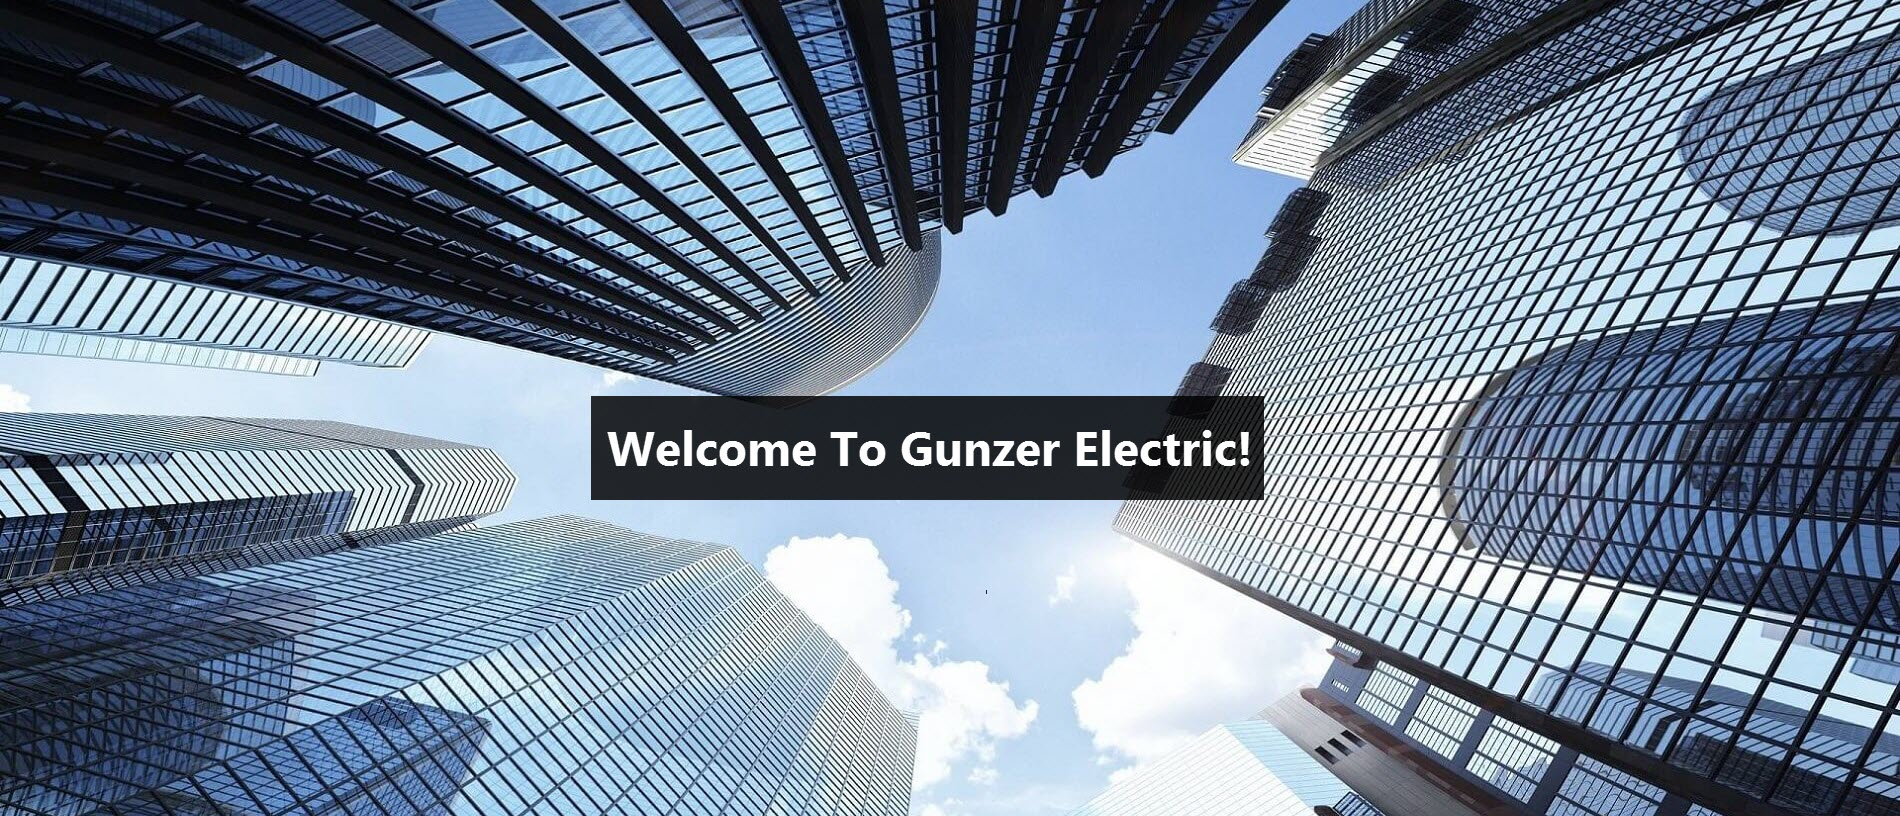 NY Electrical Contractors